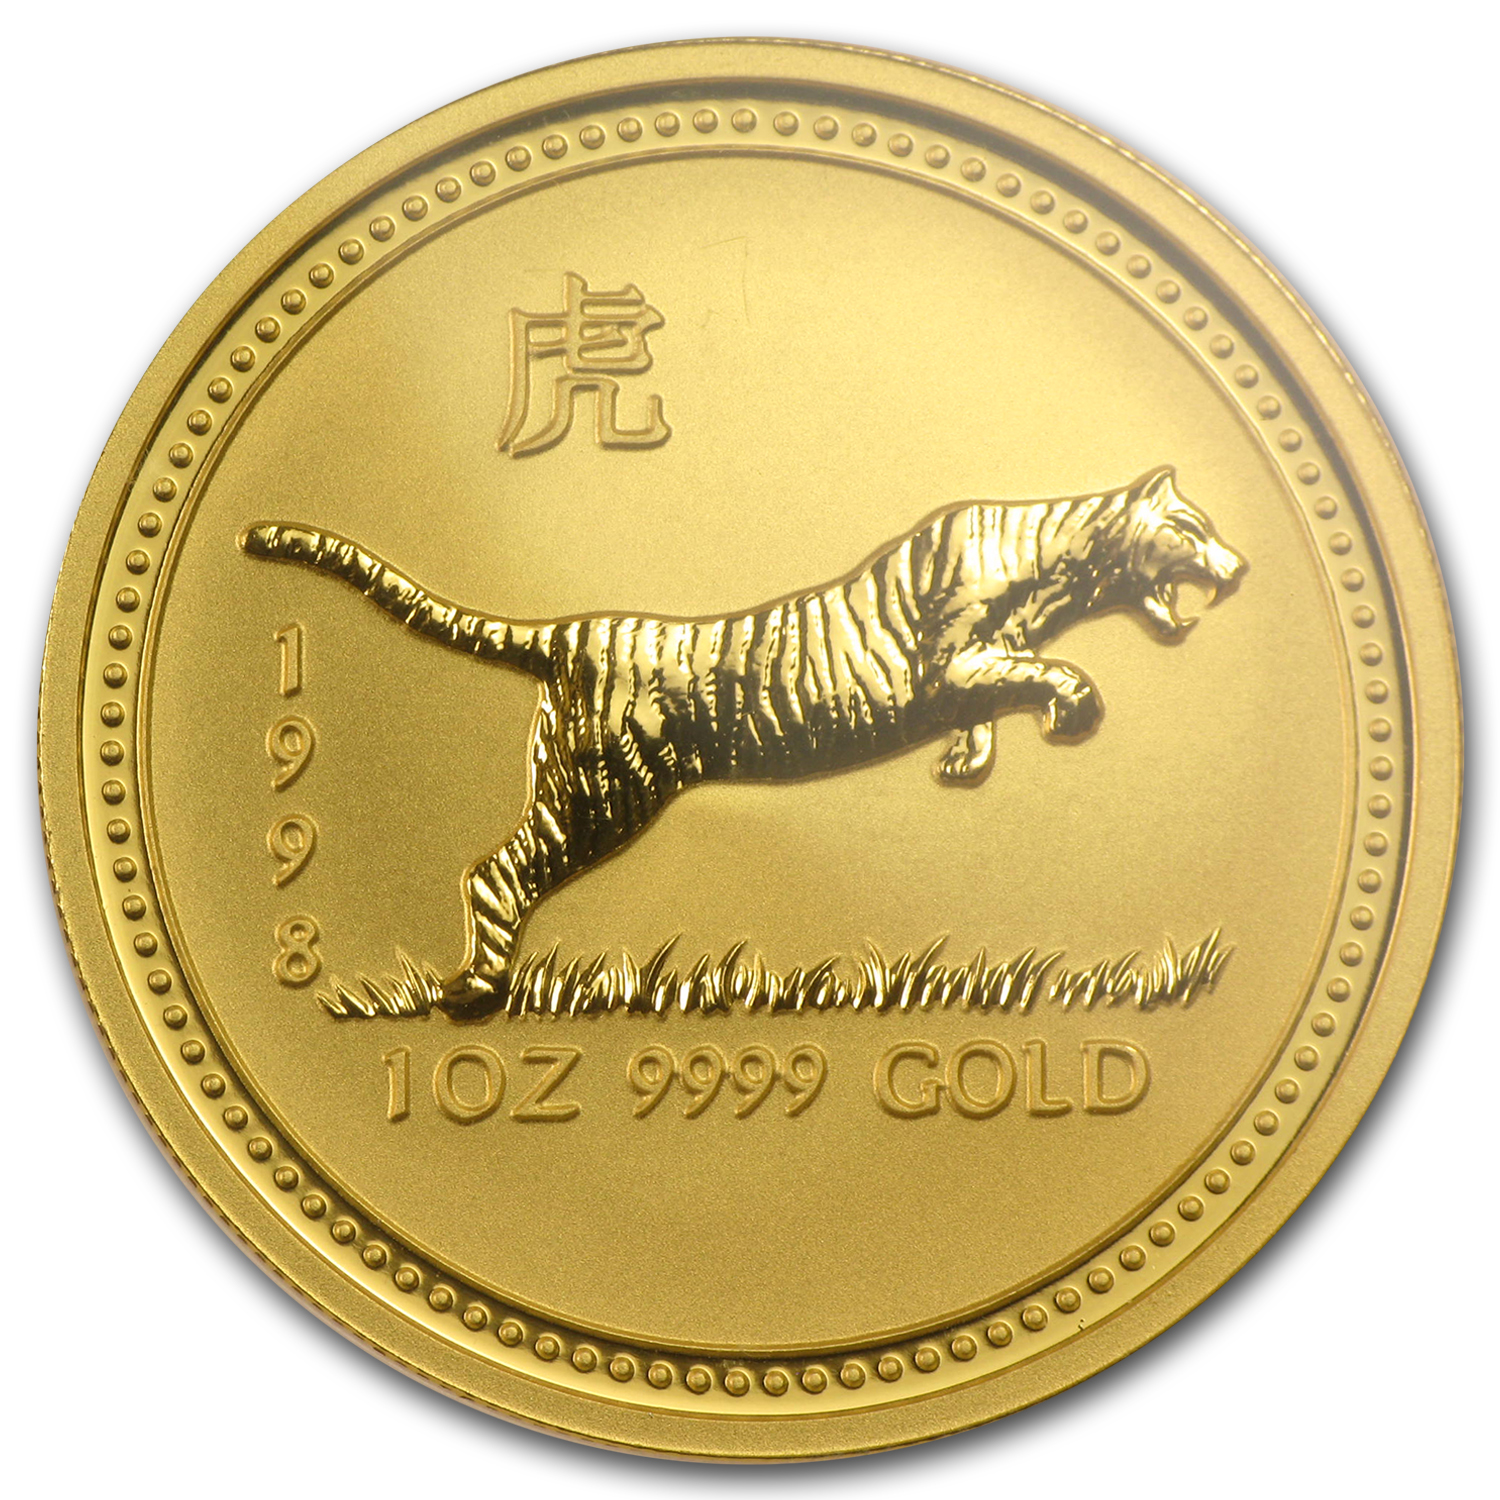 1998 1 oz Gold Year of the Tiger Lunar Coin (Series I) NGC MS-69